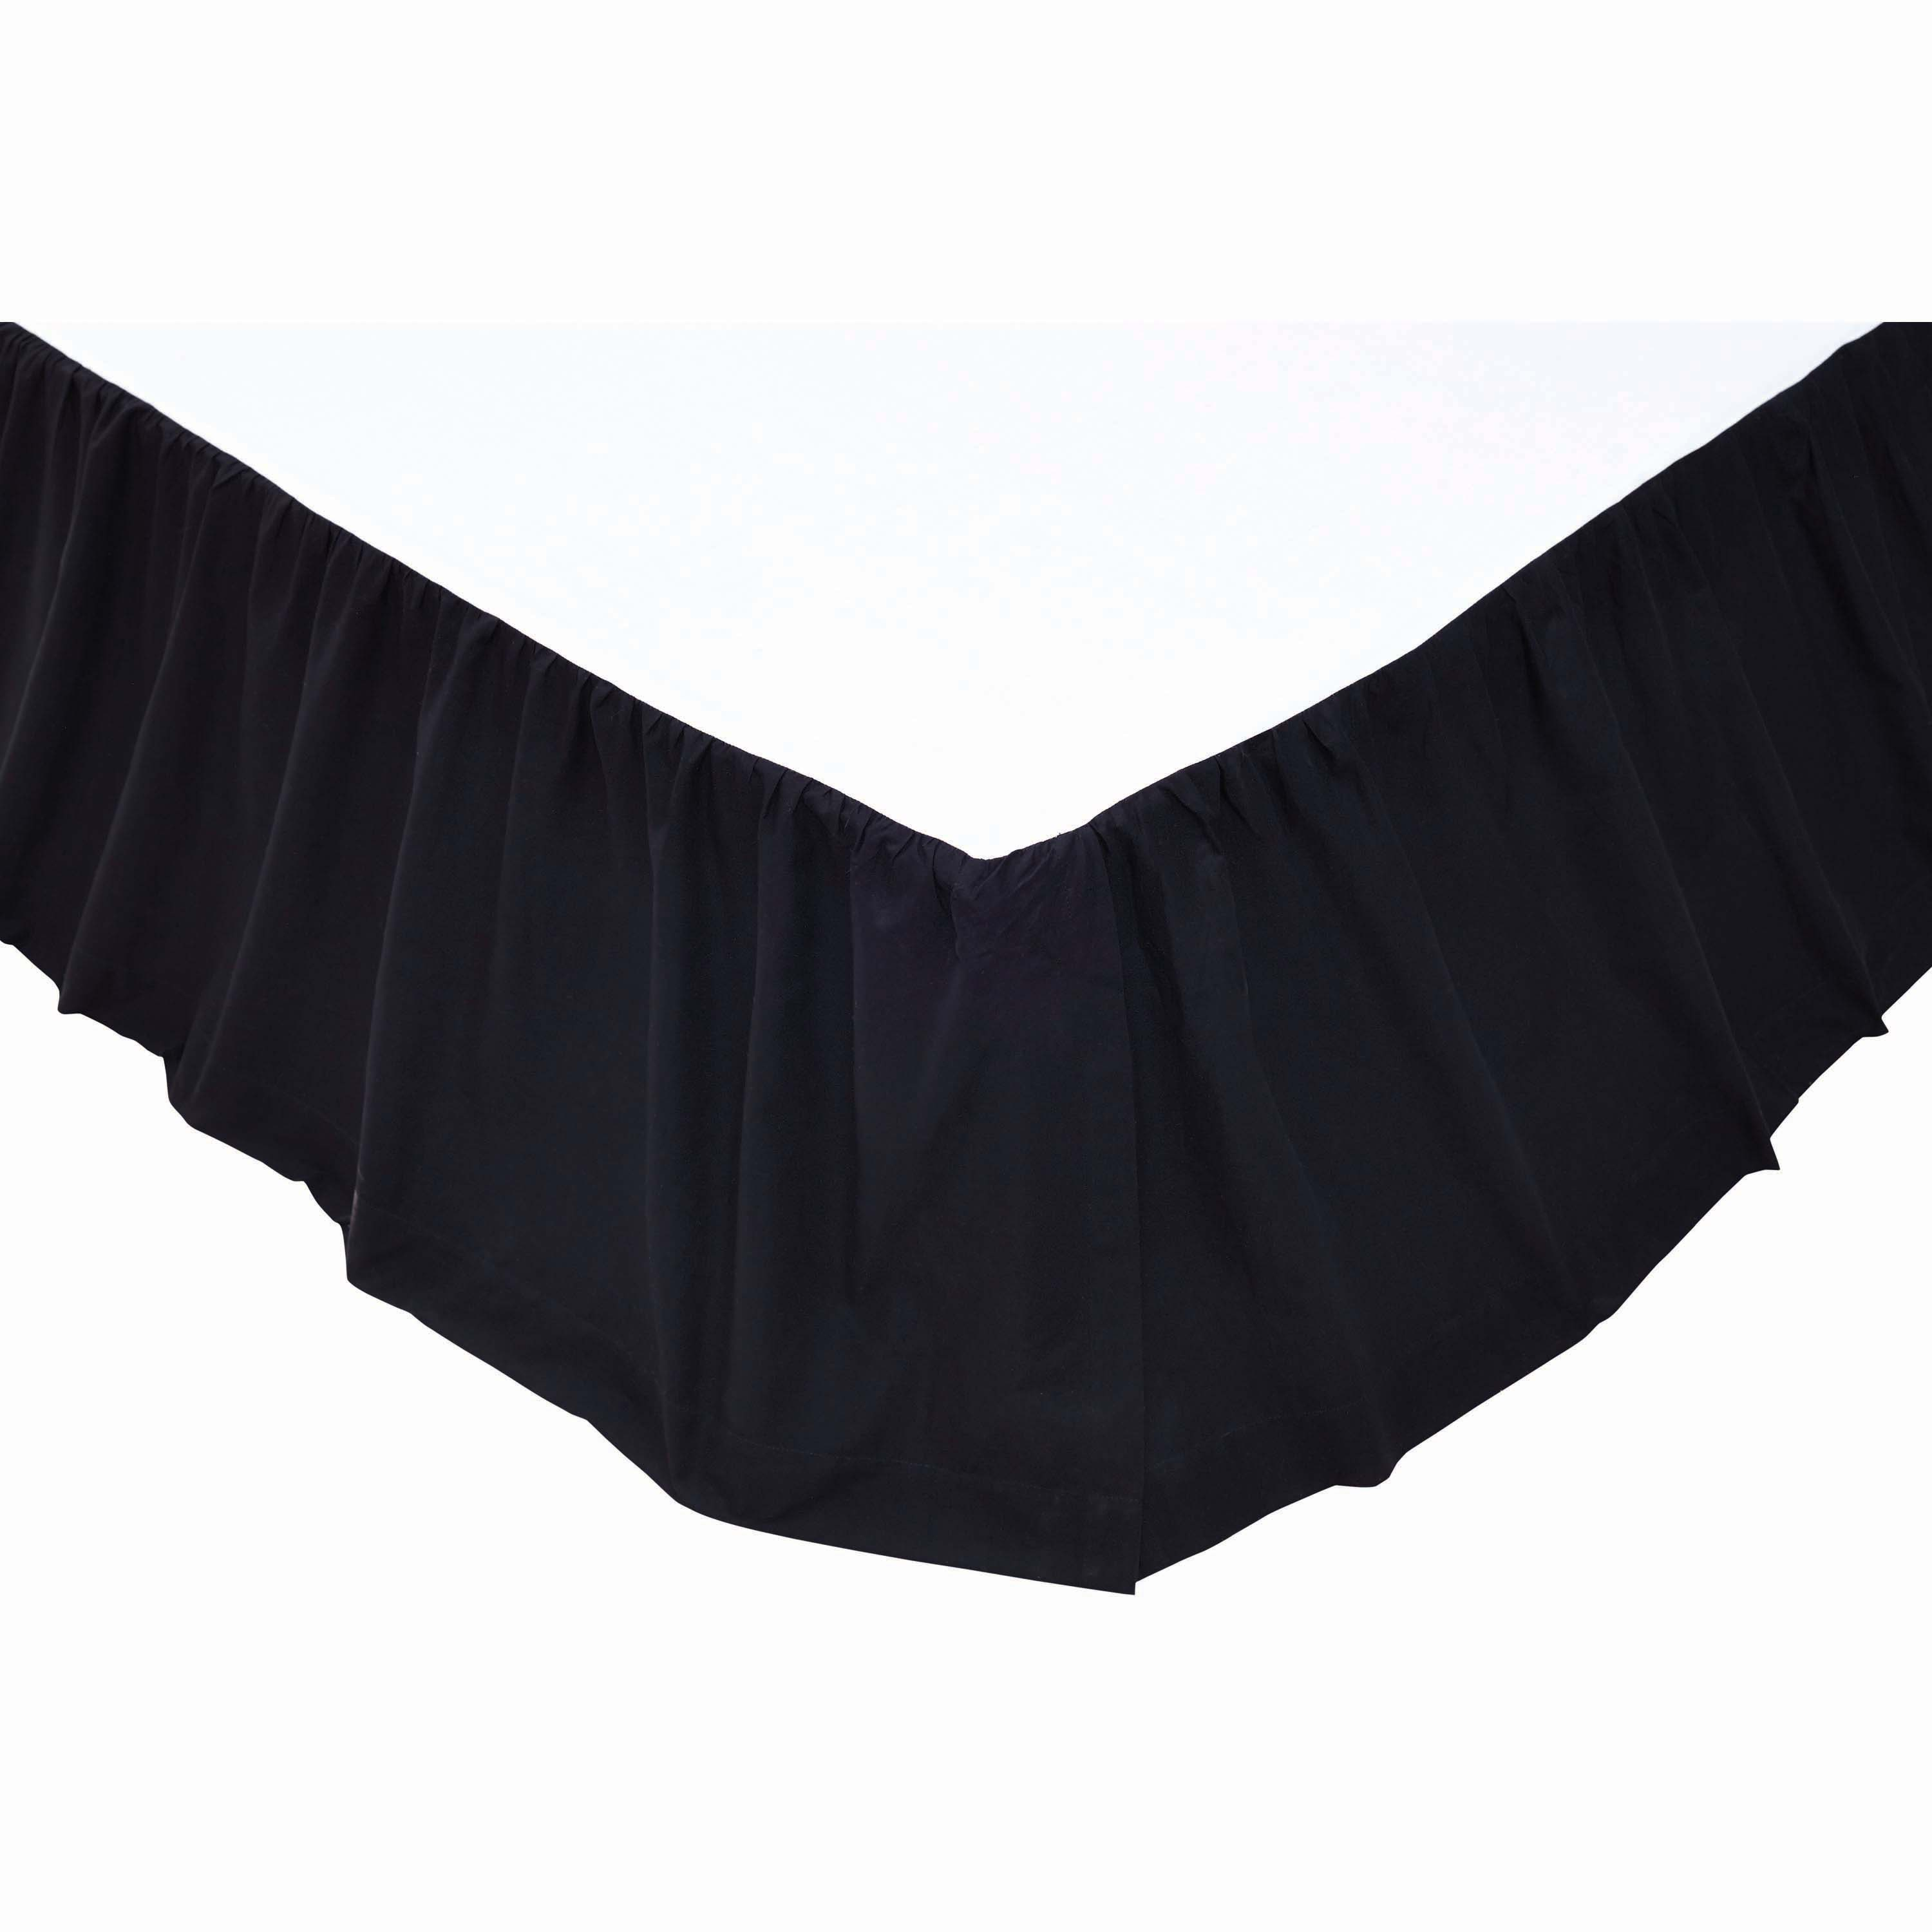 Solid Black Twin Bed Skirt 39x76x16